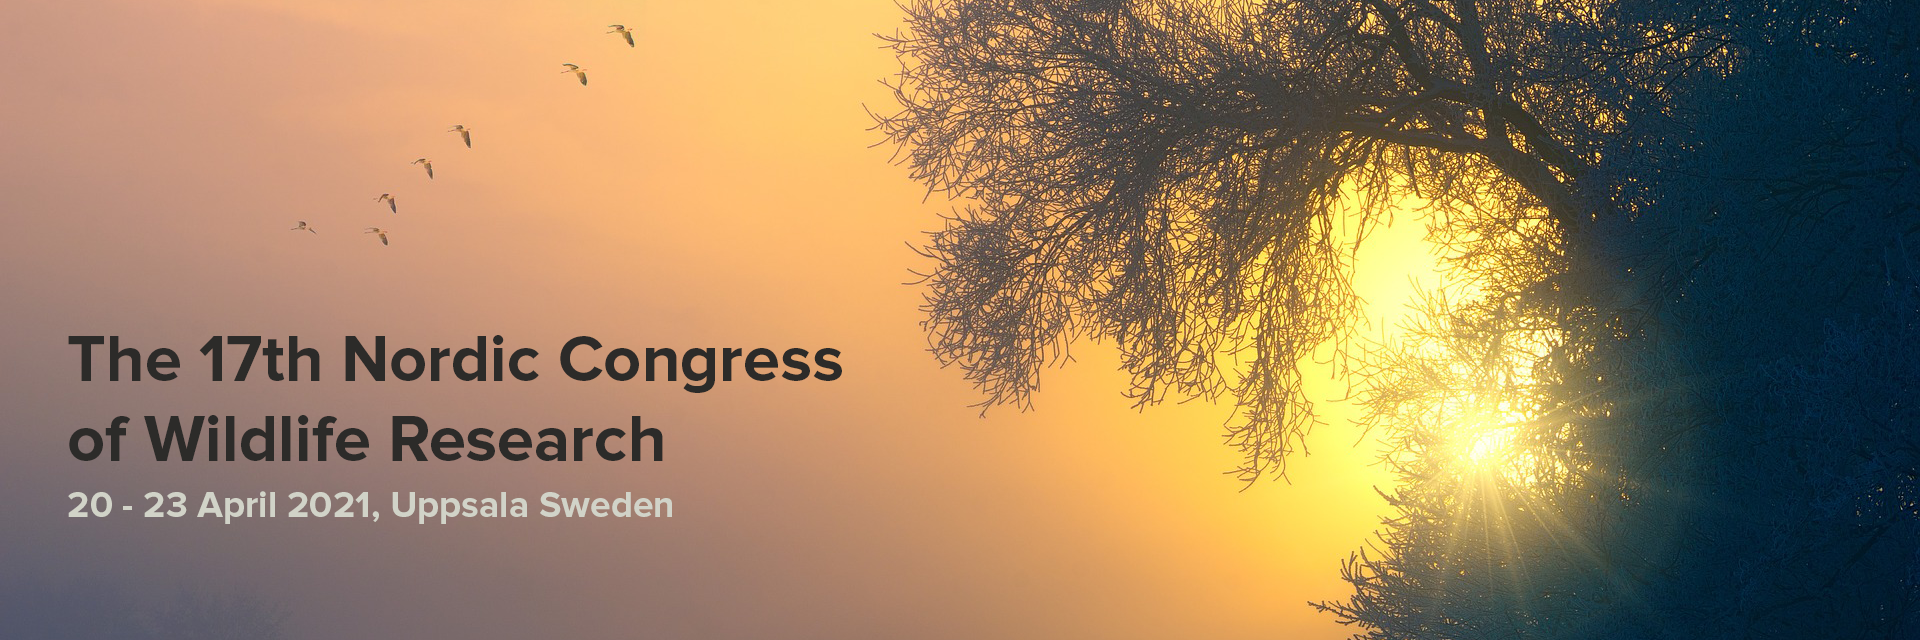 Nordic Congress of Wildlife Research 2021